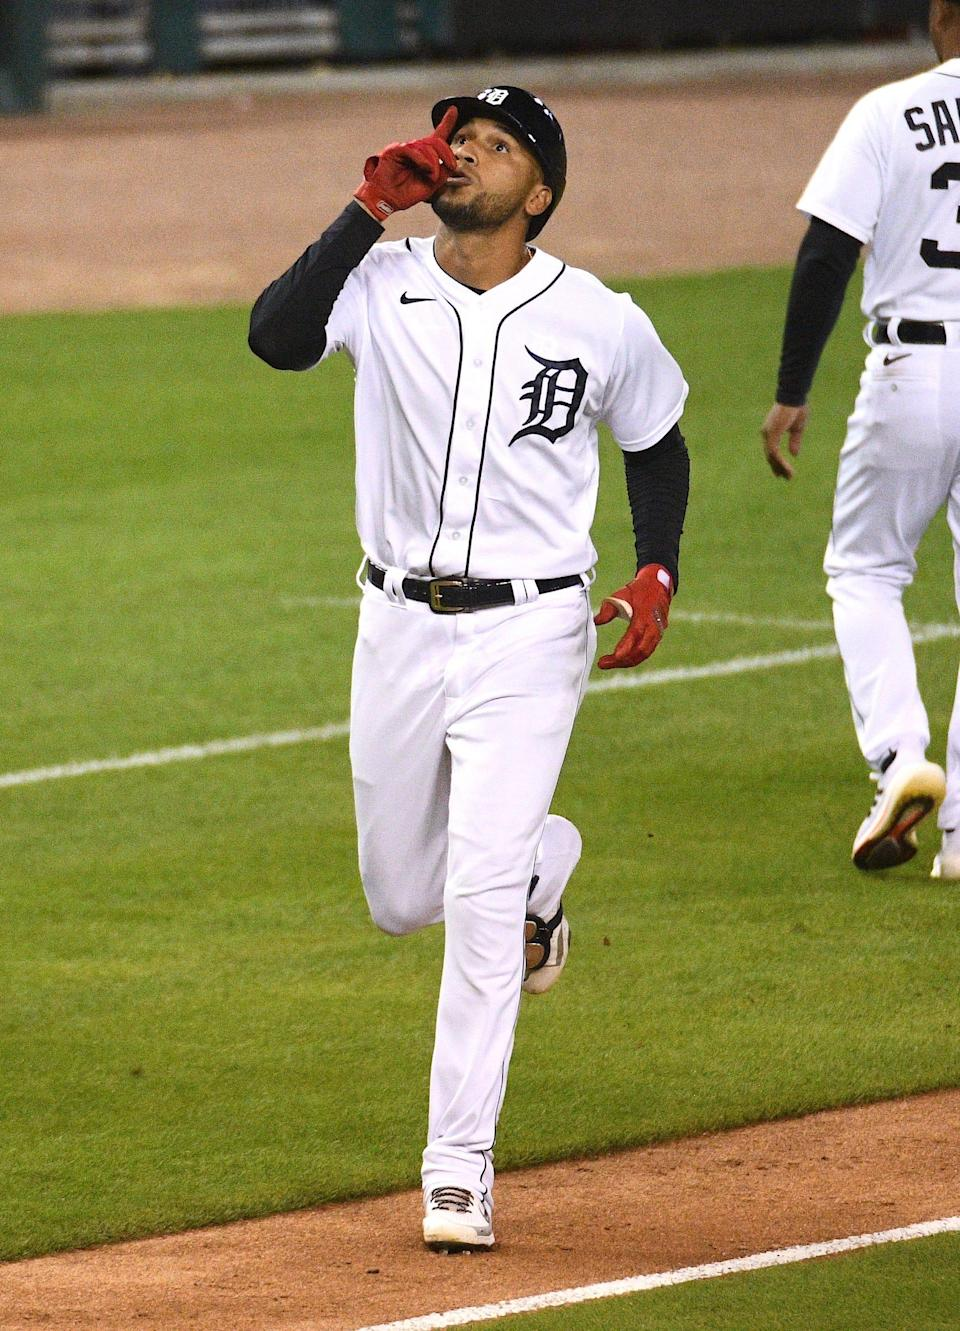 Tigers center fielder Victor Reyes celebrates his home run during the eighth inning of the Tigers' 10-4 win over the Rays on Friday, Sept. 10, 2021, at Comerica Park.